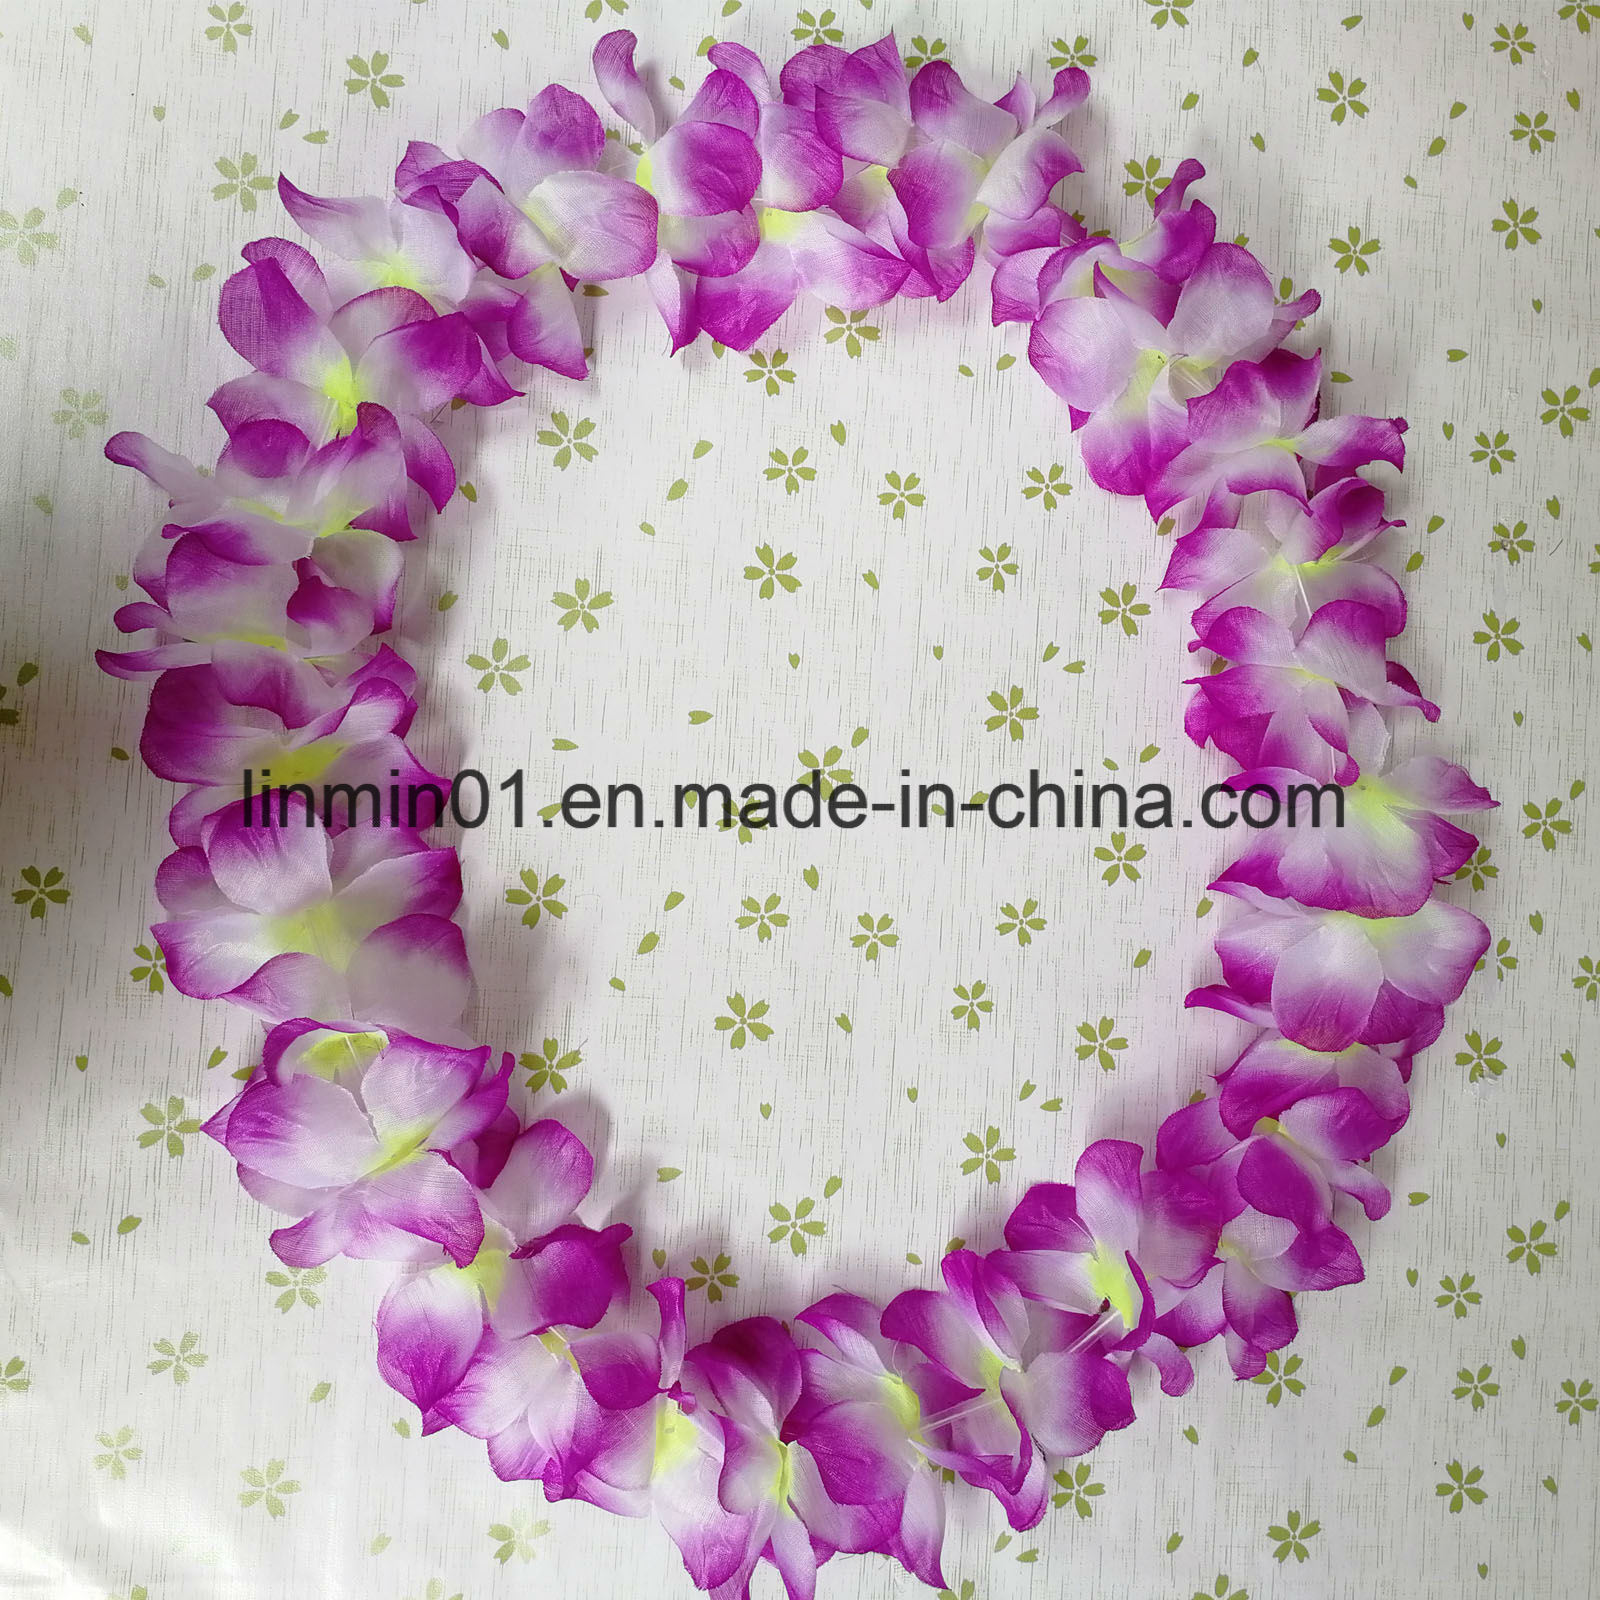 China Custom Party Supplies Artificial Hawaii Necklace Flower Lei